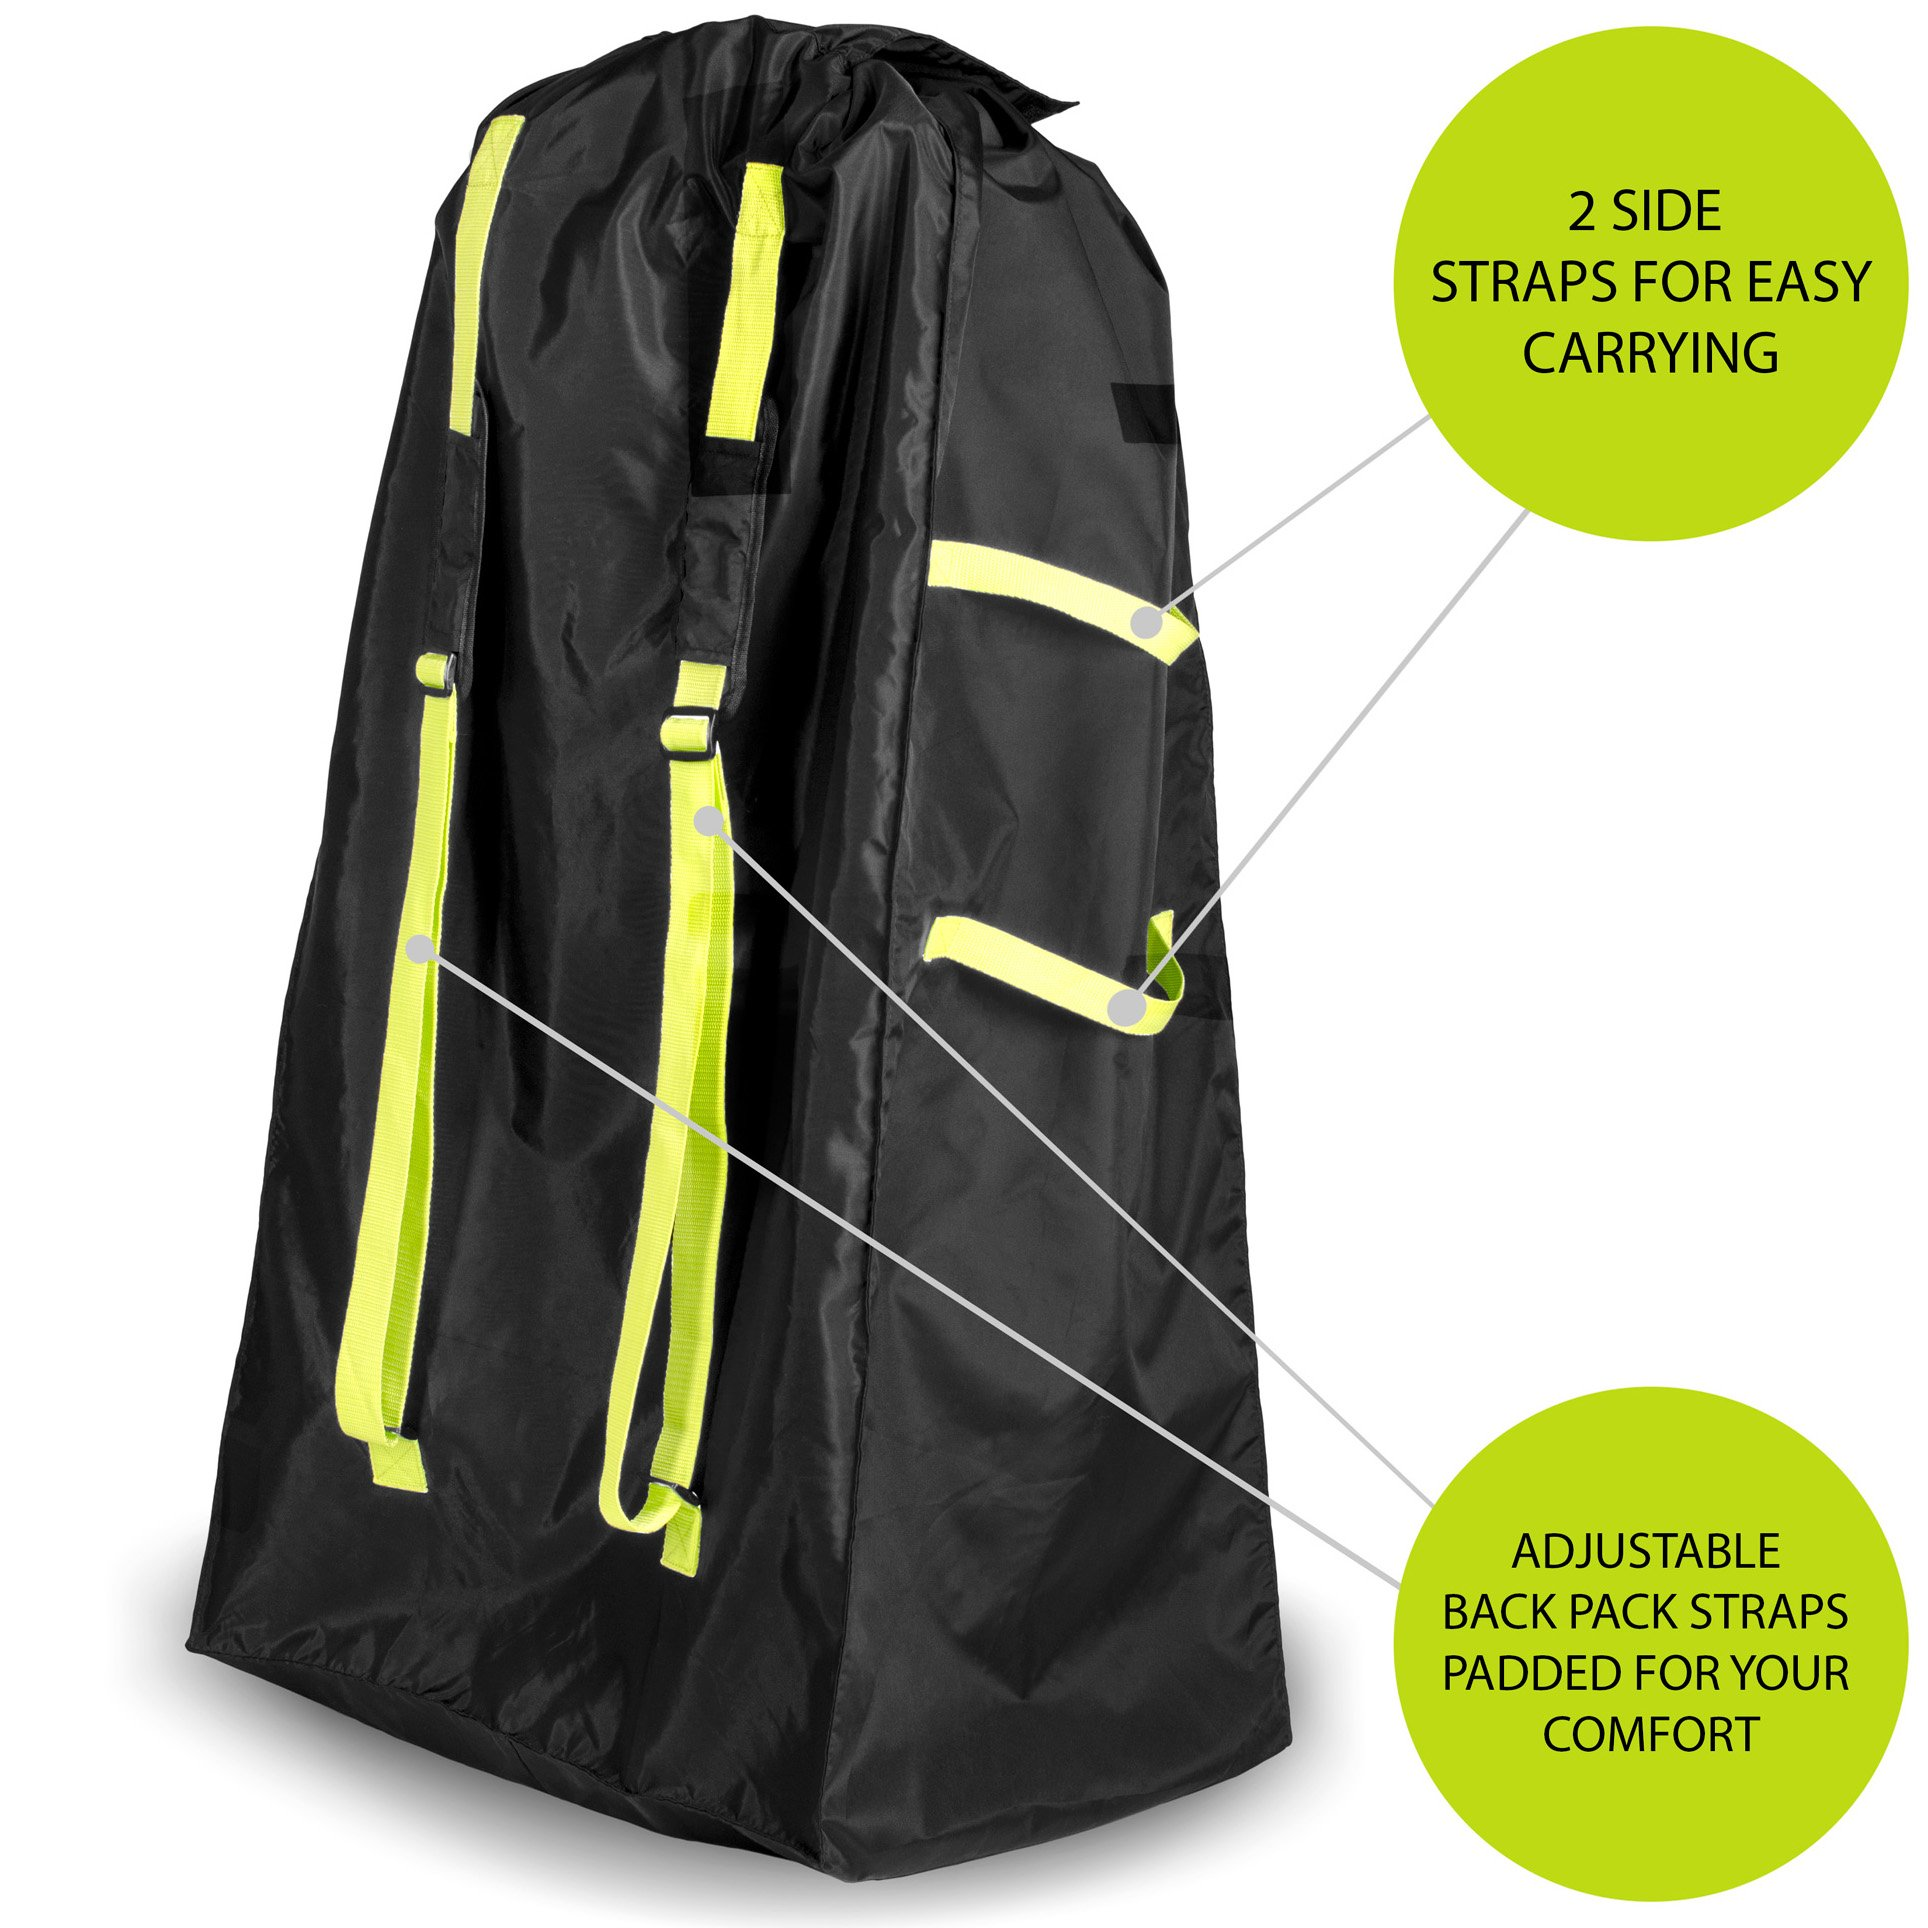 Volkgo Durable Stroller Bag For Airplane Standard Or